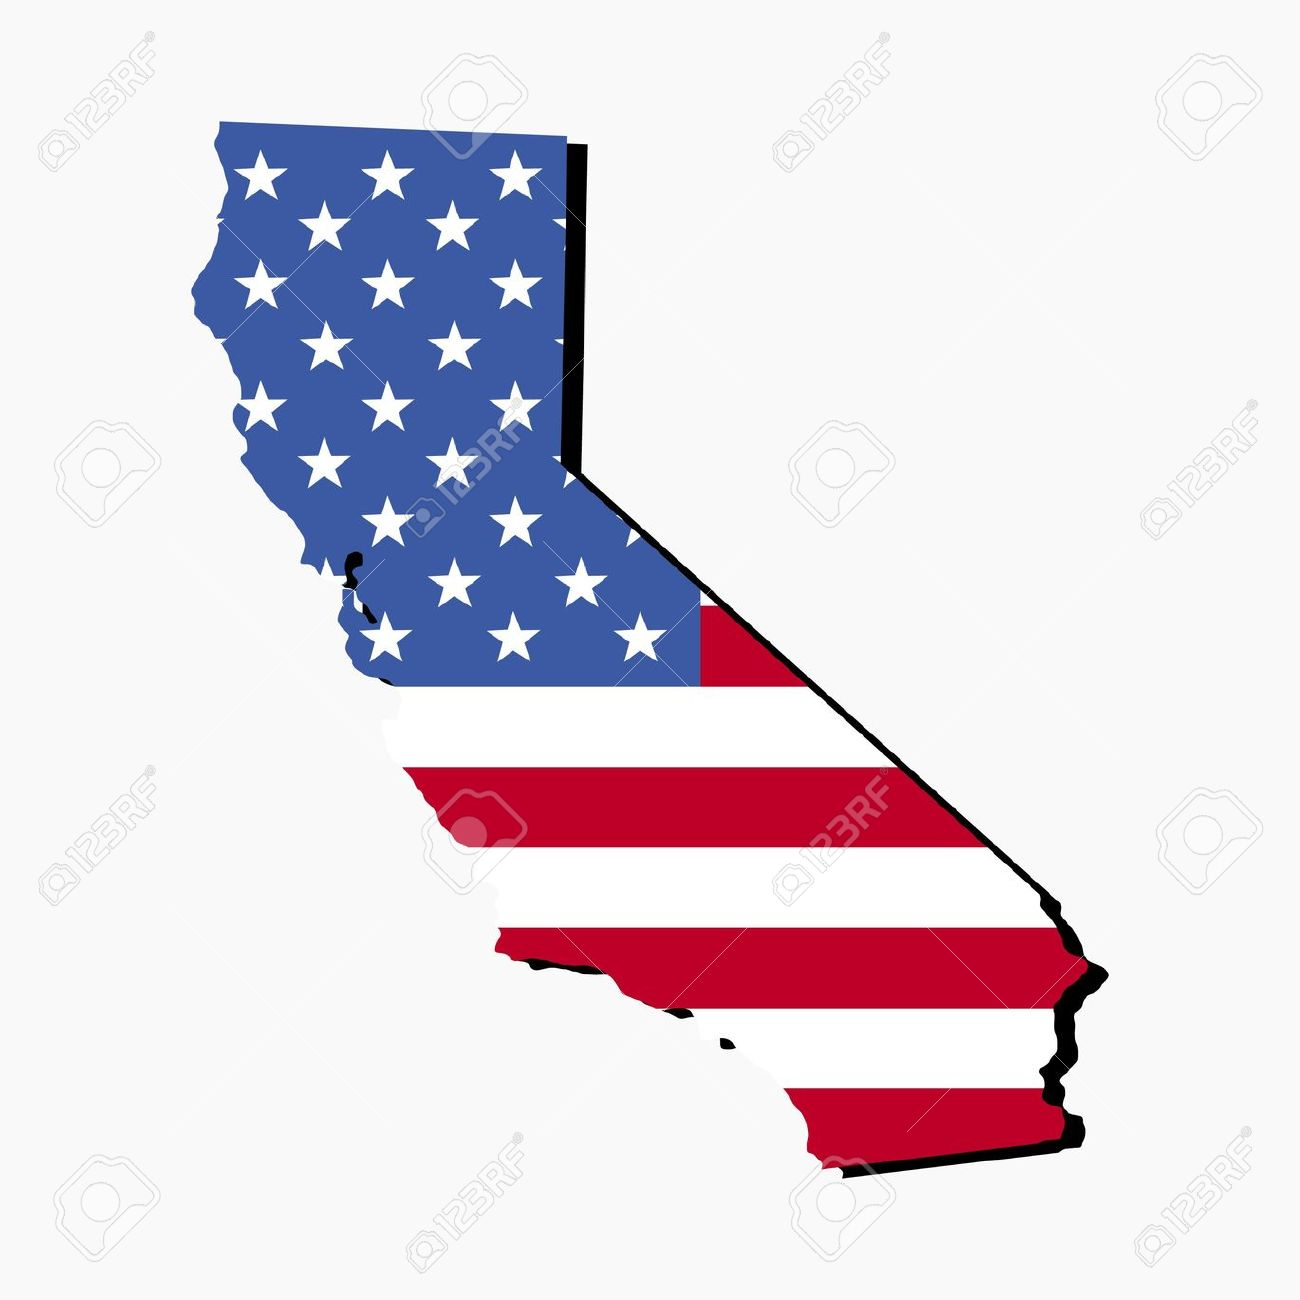 Us map of california state clipart banner black and white download California on a us map clipart - ClipartFest banner black and white download